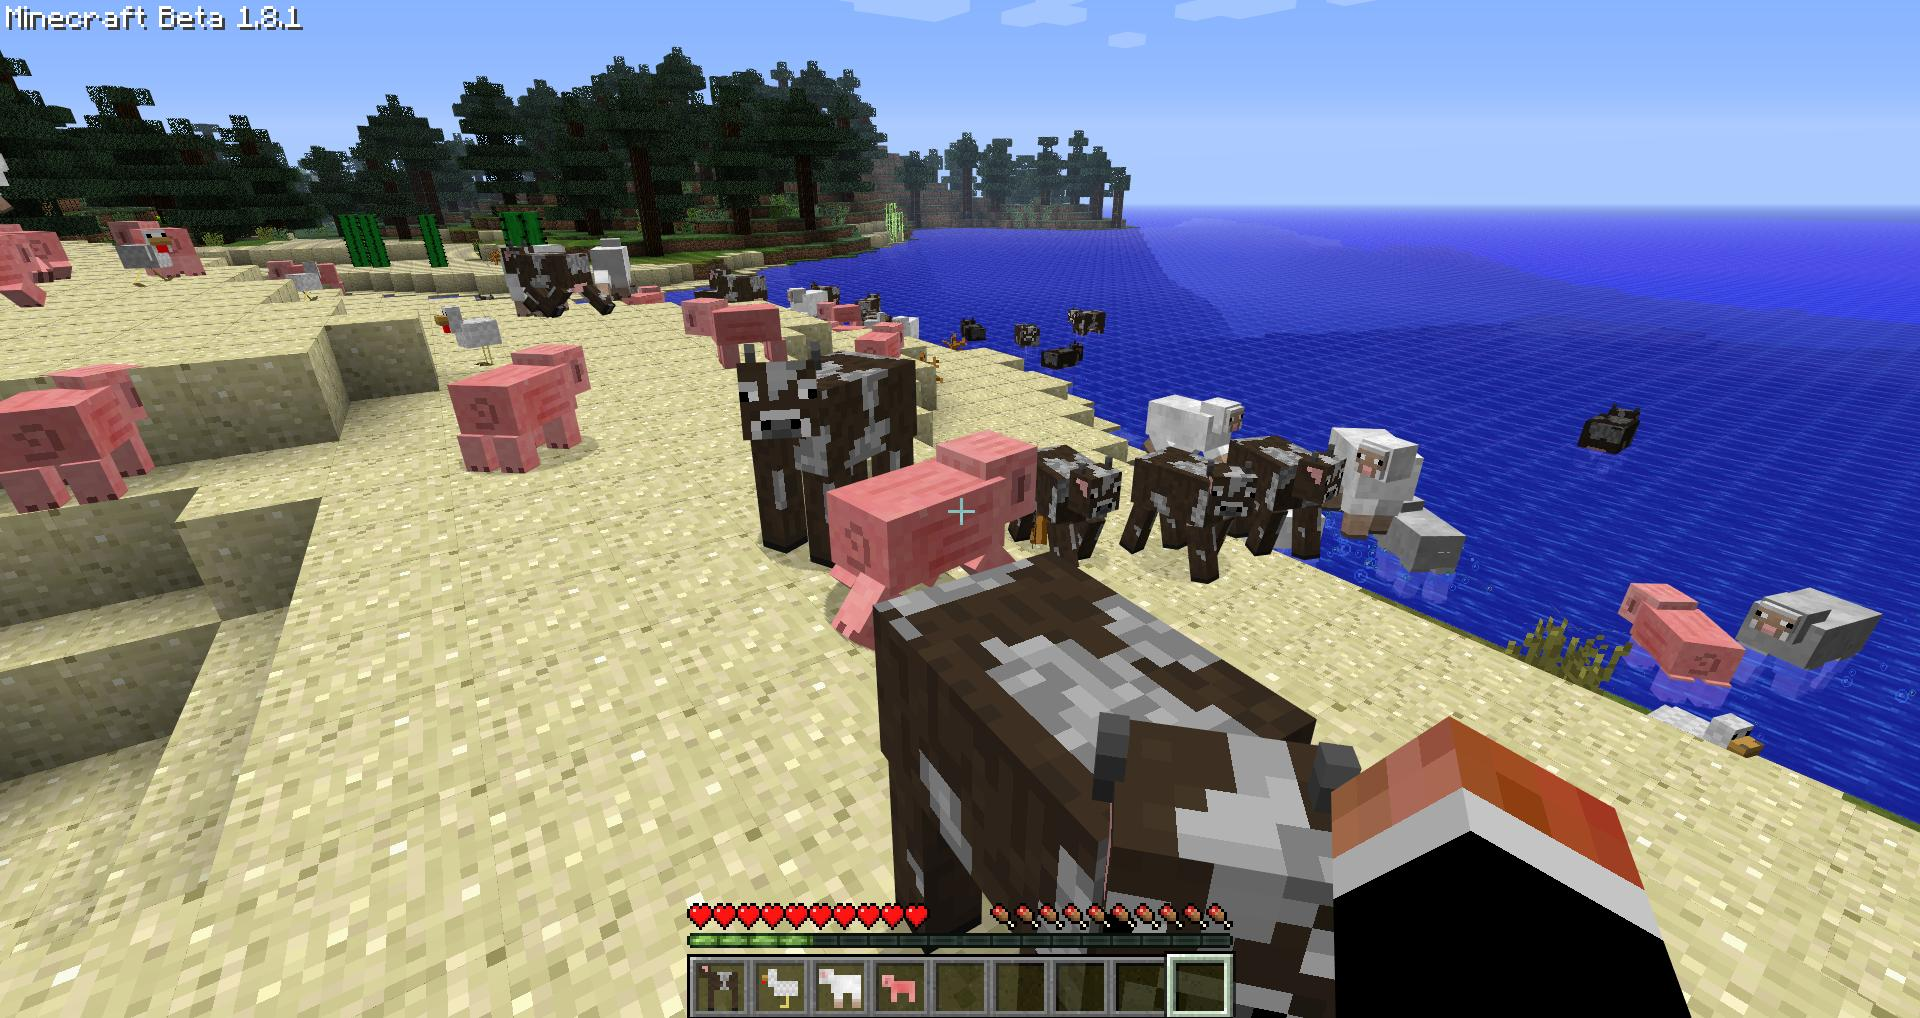 http://minecraft-forum.net/wp-content/uploads/2013/02/7233c__Craftable-Animals-Mod-1.jpg